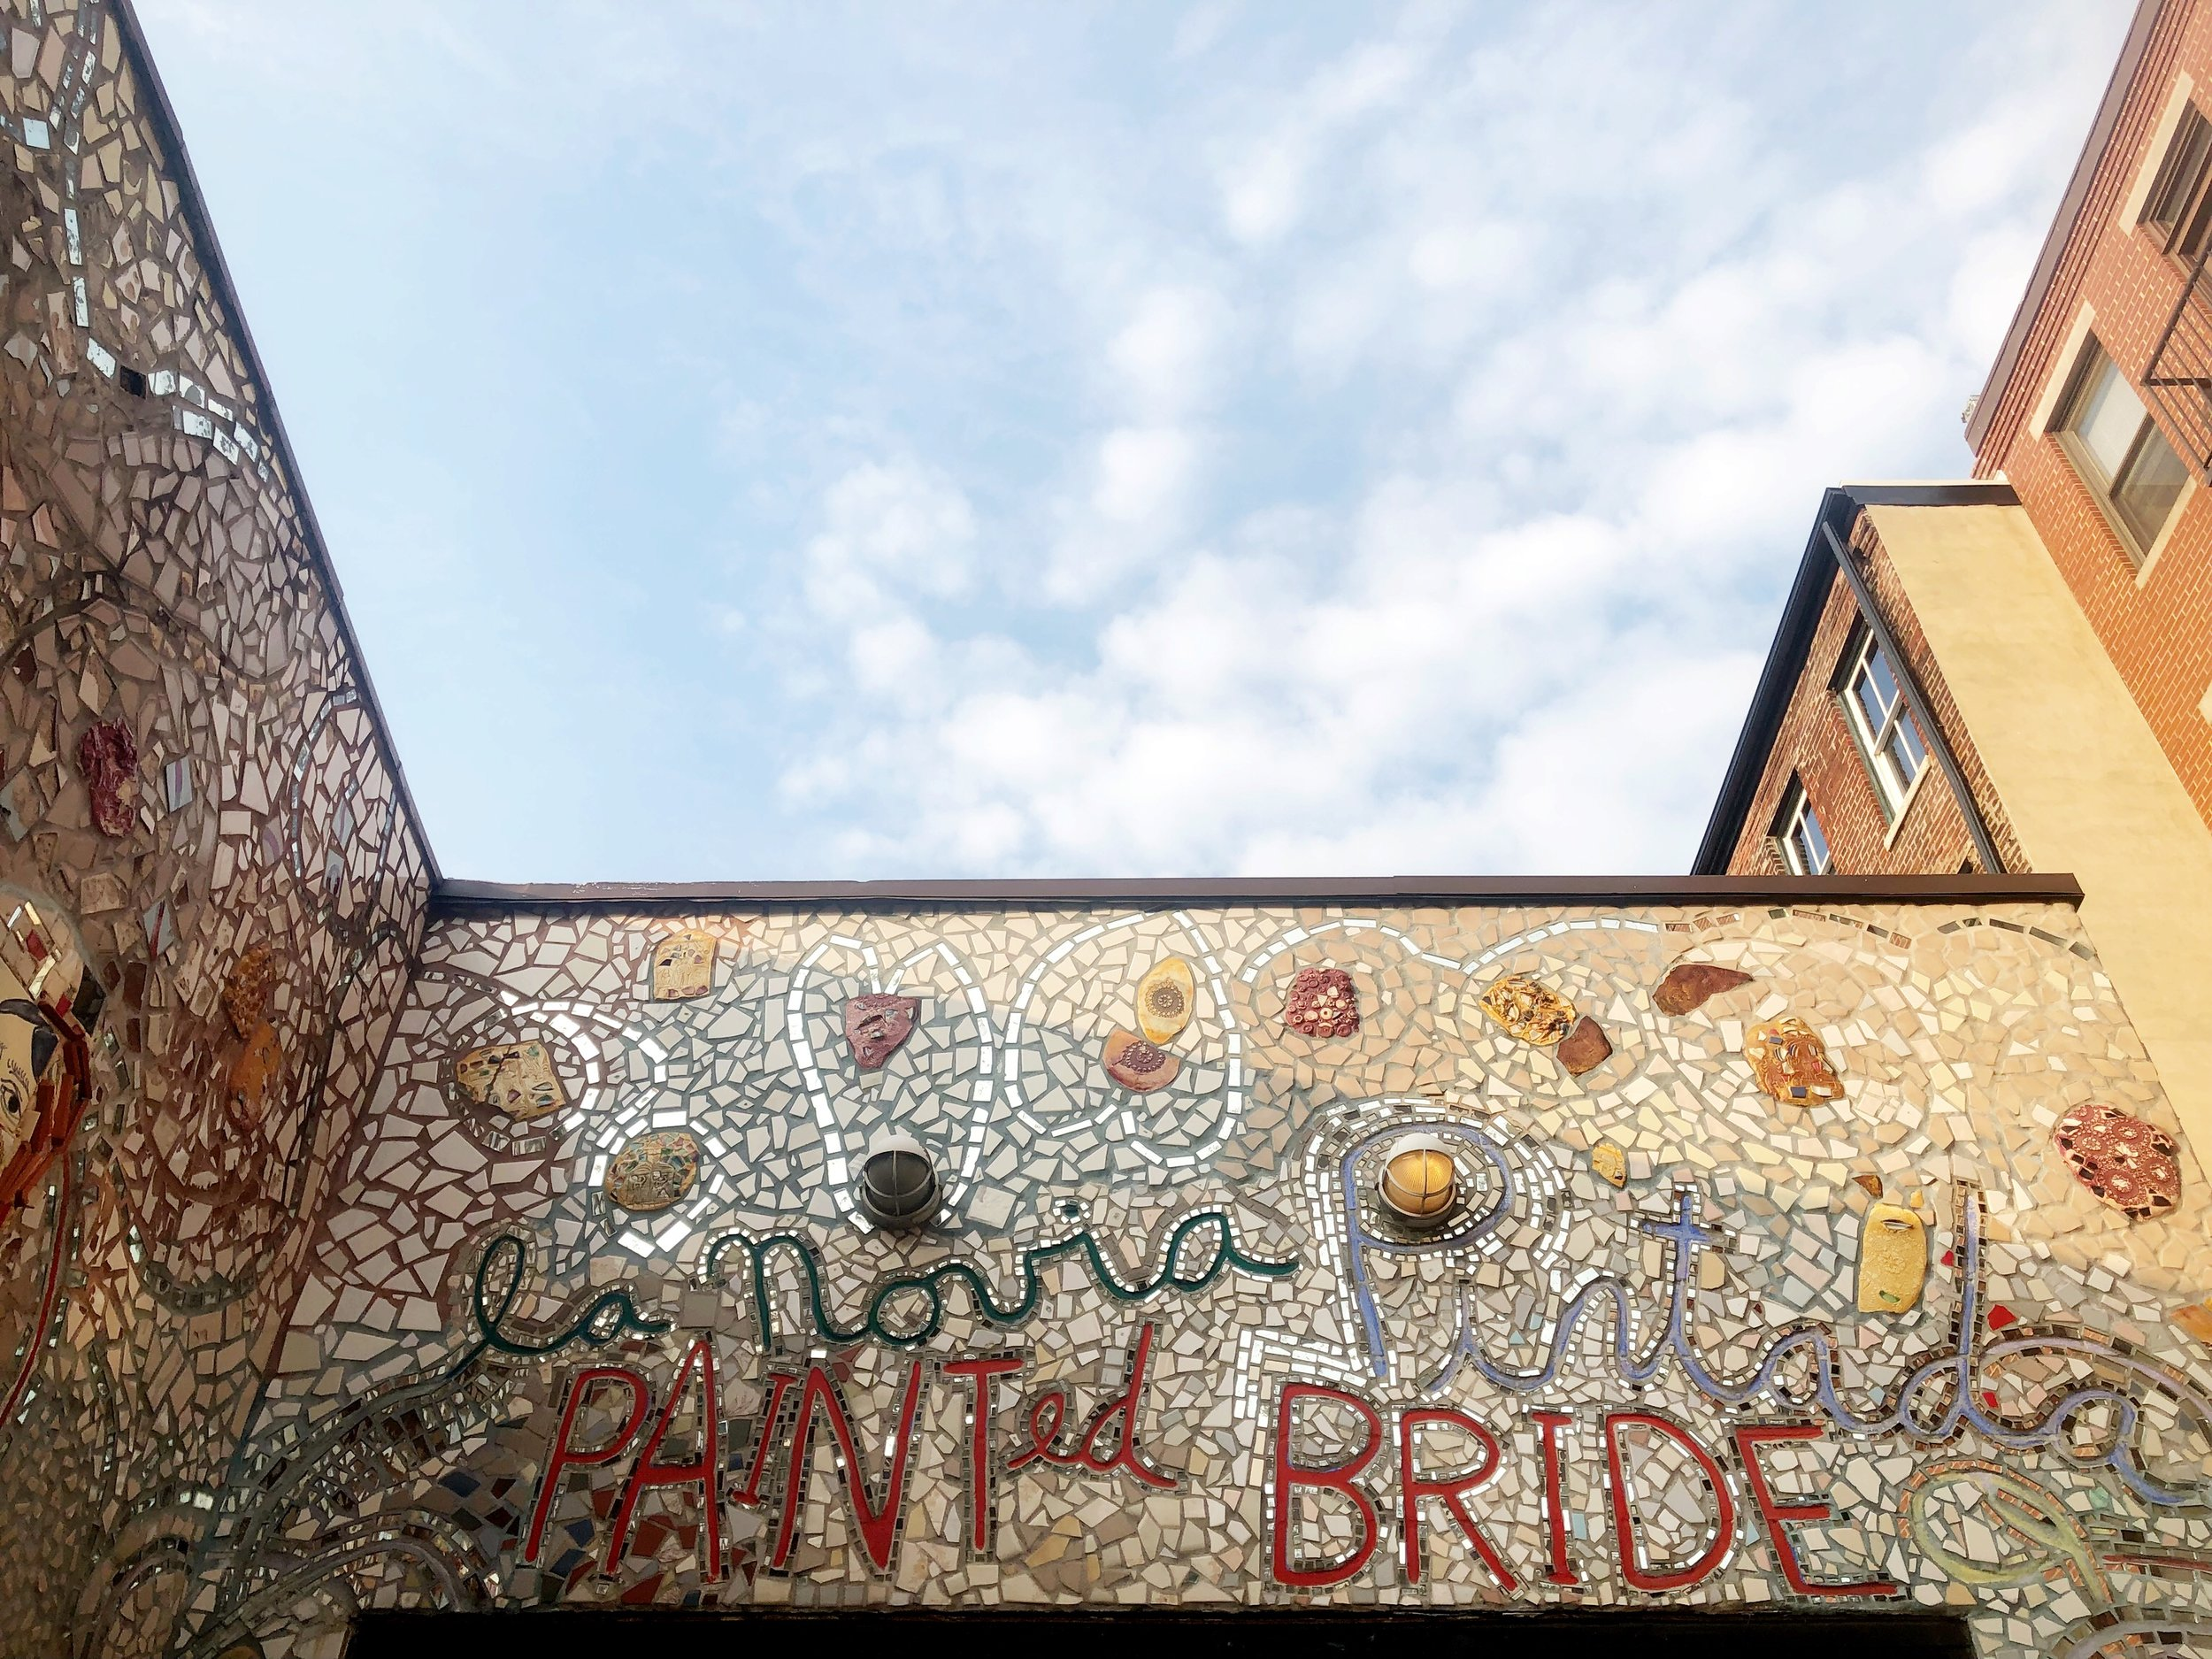 The Painted Bride by Isaiah Zagar, Philadelphia, PA --  Read about its past, present, and future